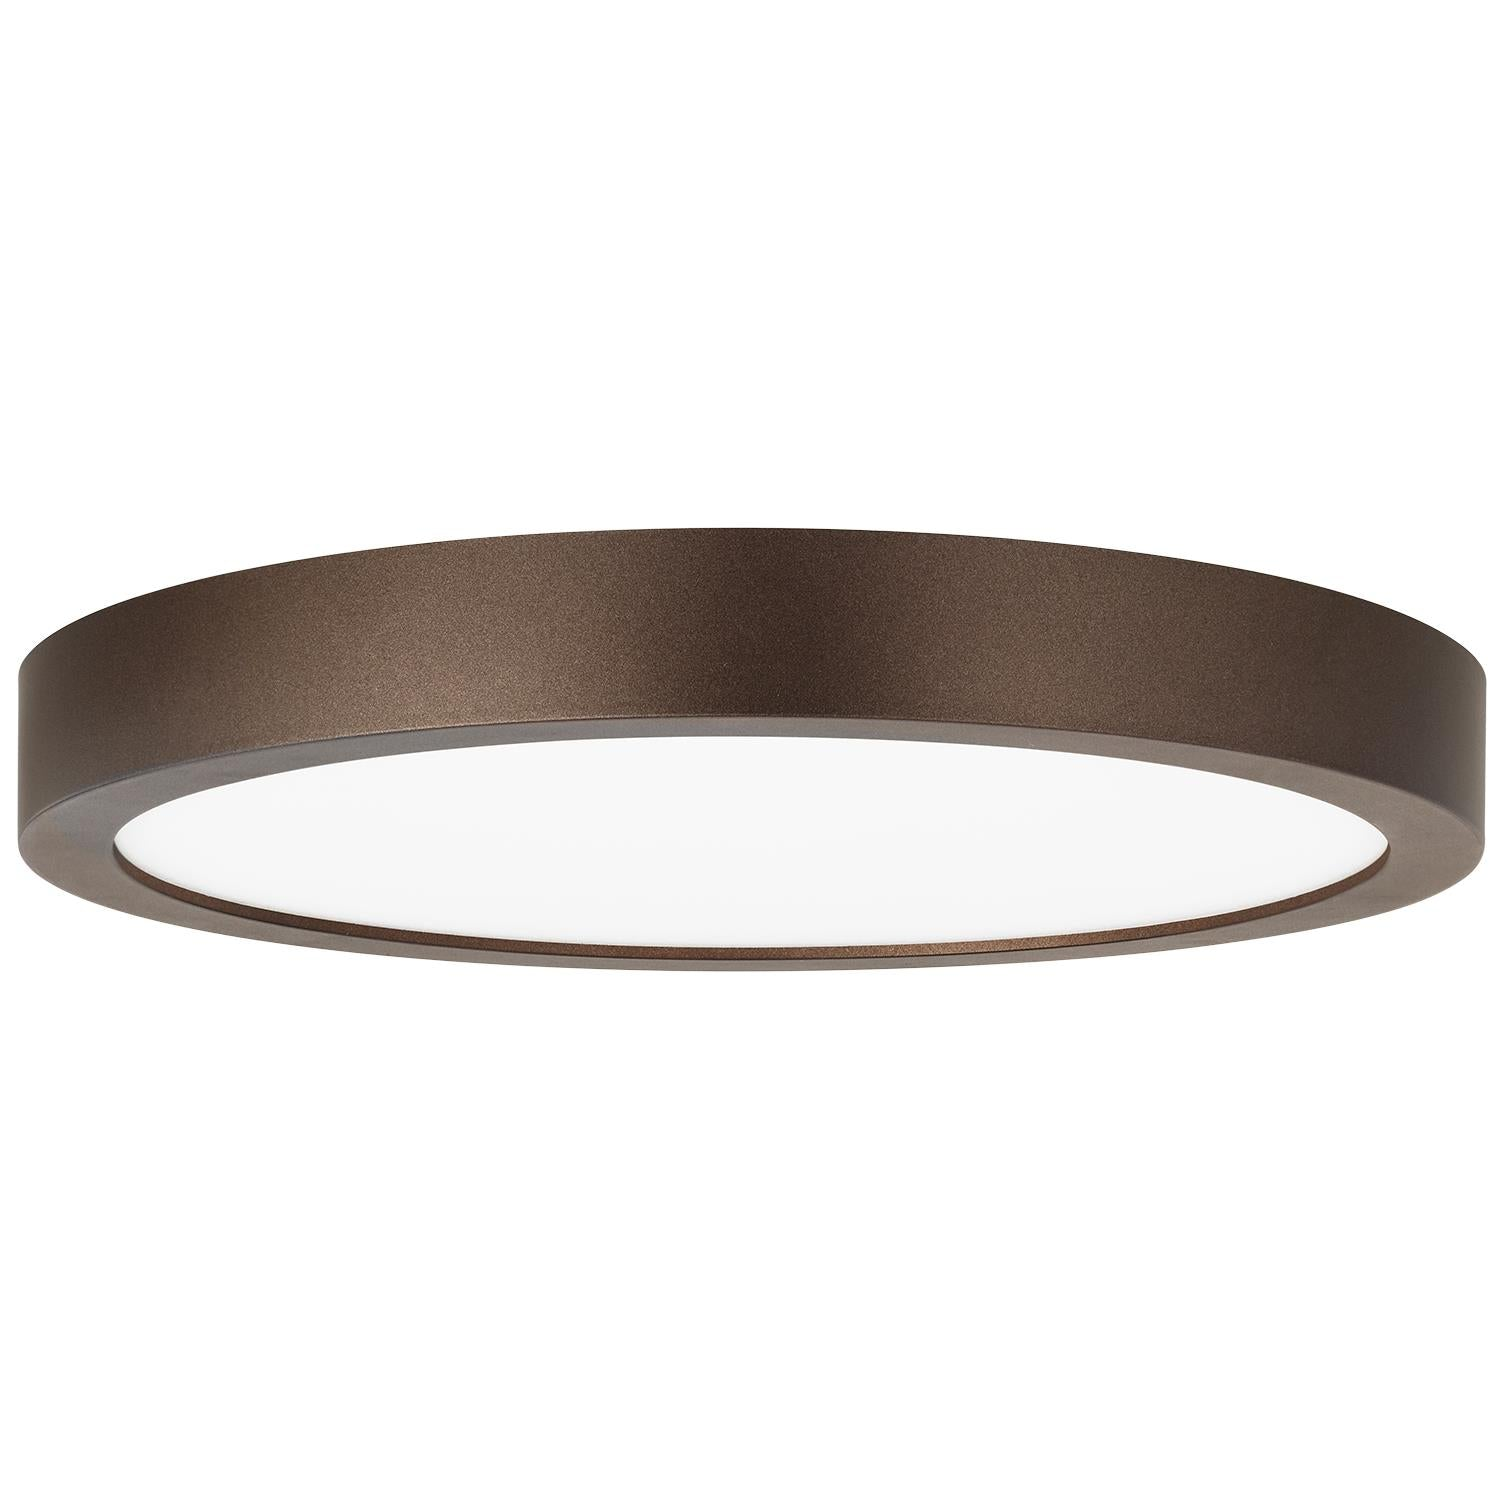 Sunlite 7in. Round LED Mini Flat Panel Fixture, 4000K - Cool White, Bronze Finish